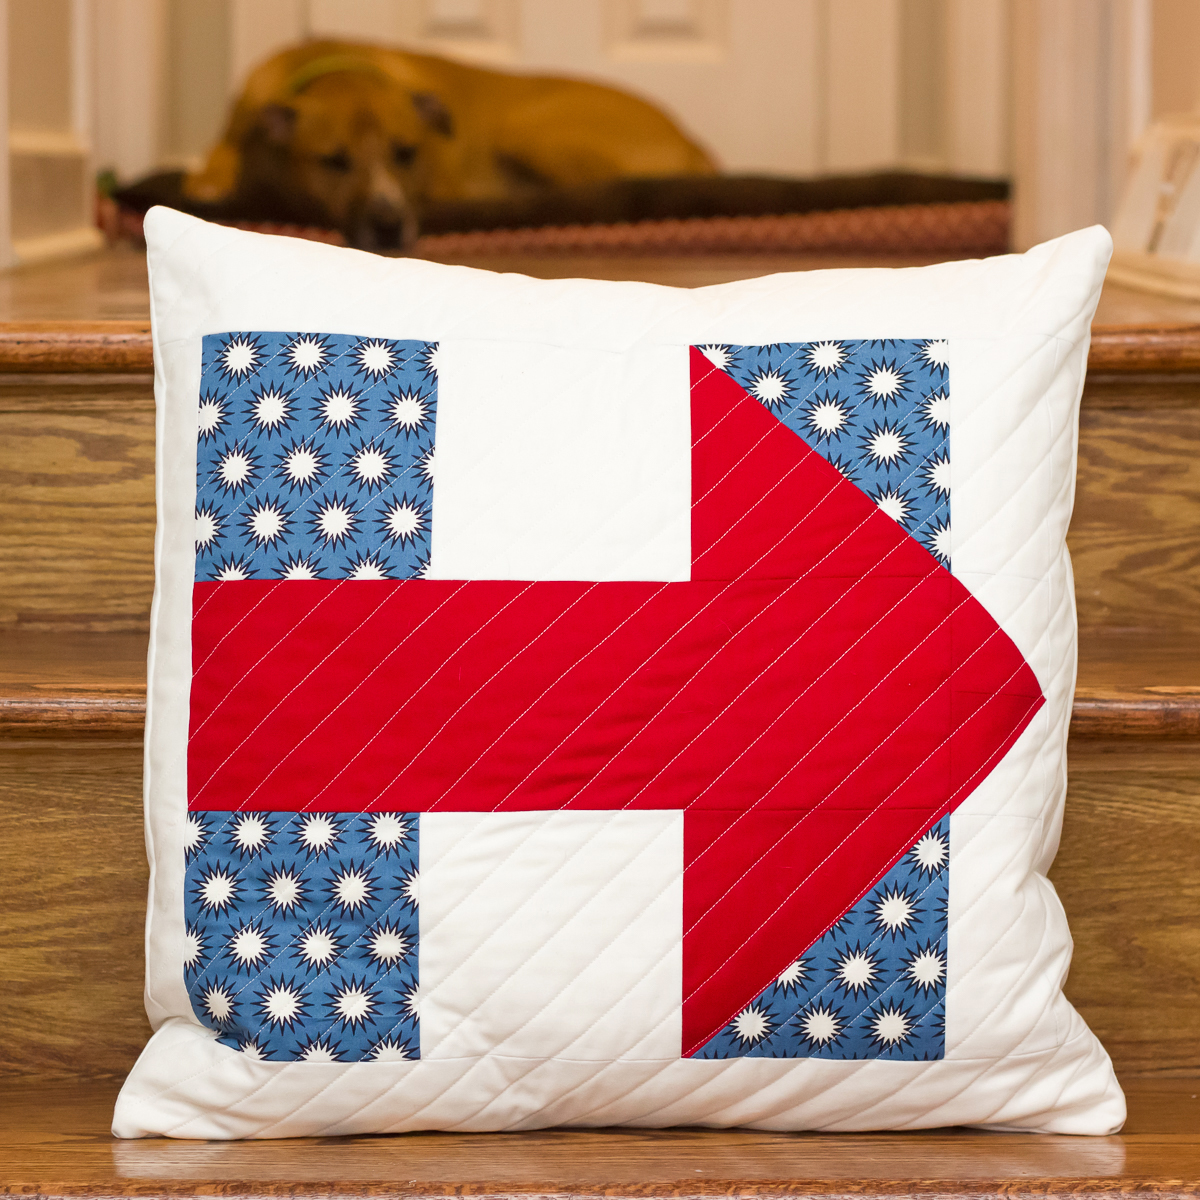 I'M WITH HER QUILTED PILLOW Pattern by Oh Sew Angelina